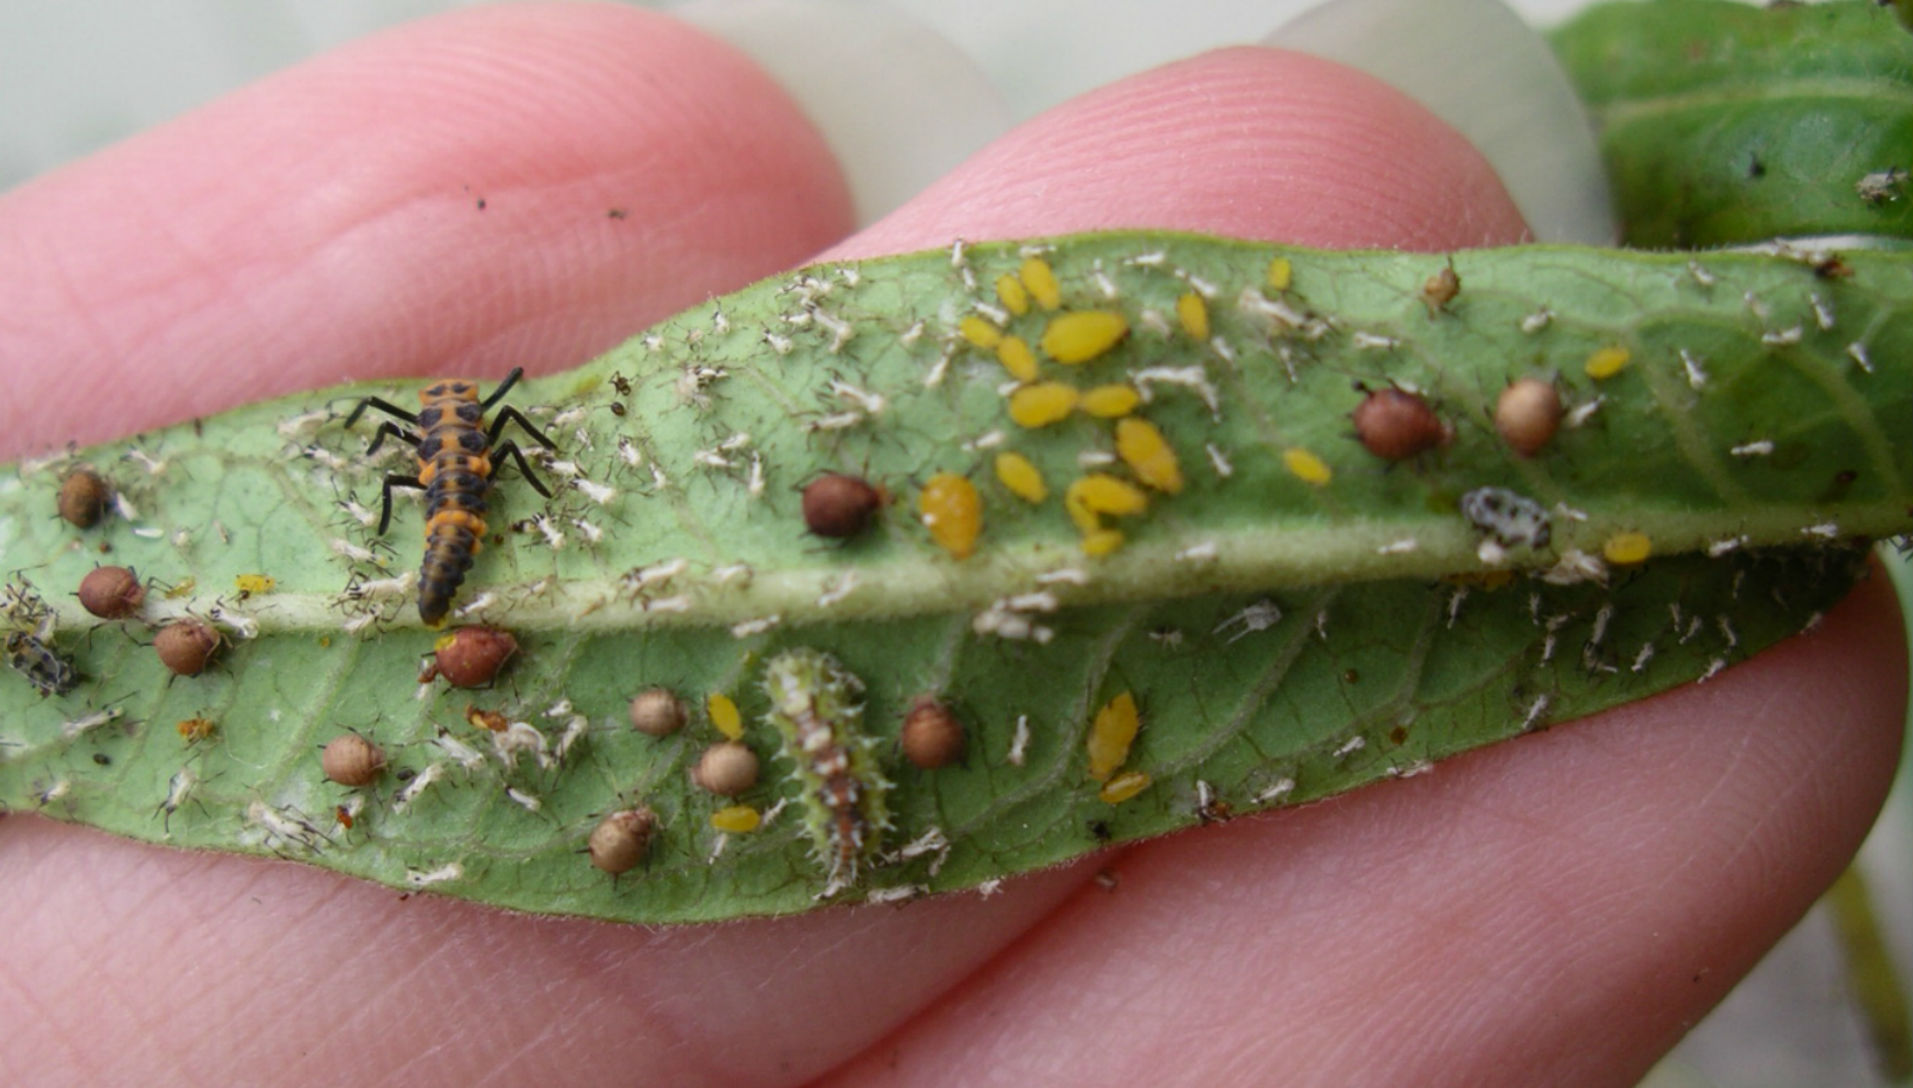 Ladybug and hoverfly larvae, with aphids, on milkweed